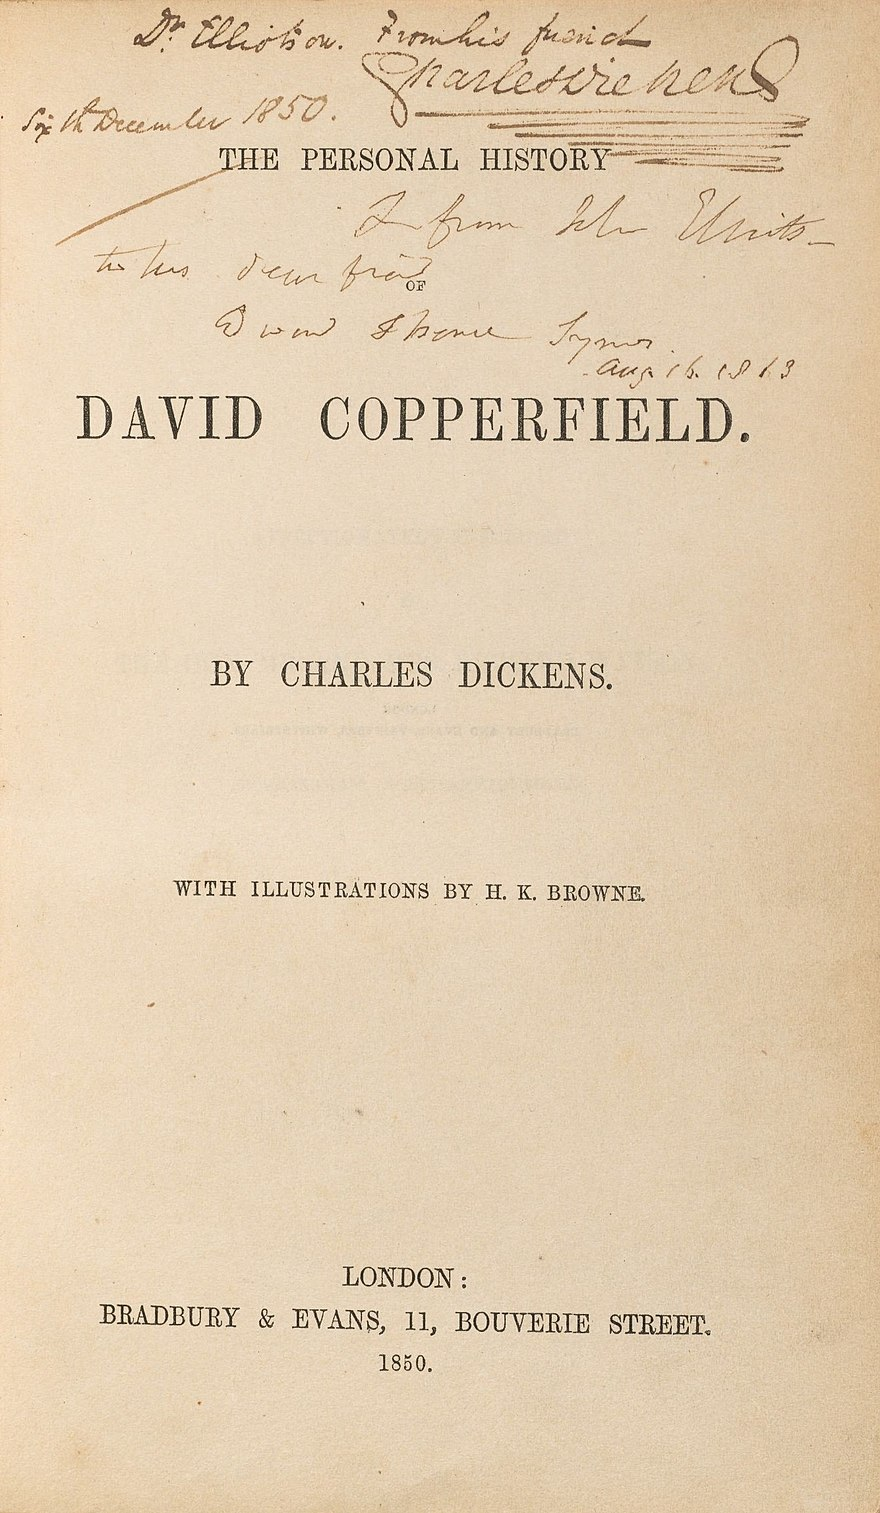 David Copperfield - The Reader Wiki, Reader View of Wikipedia